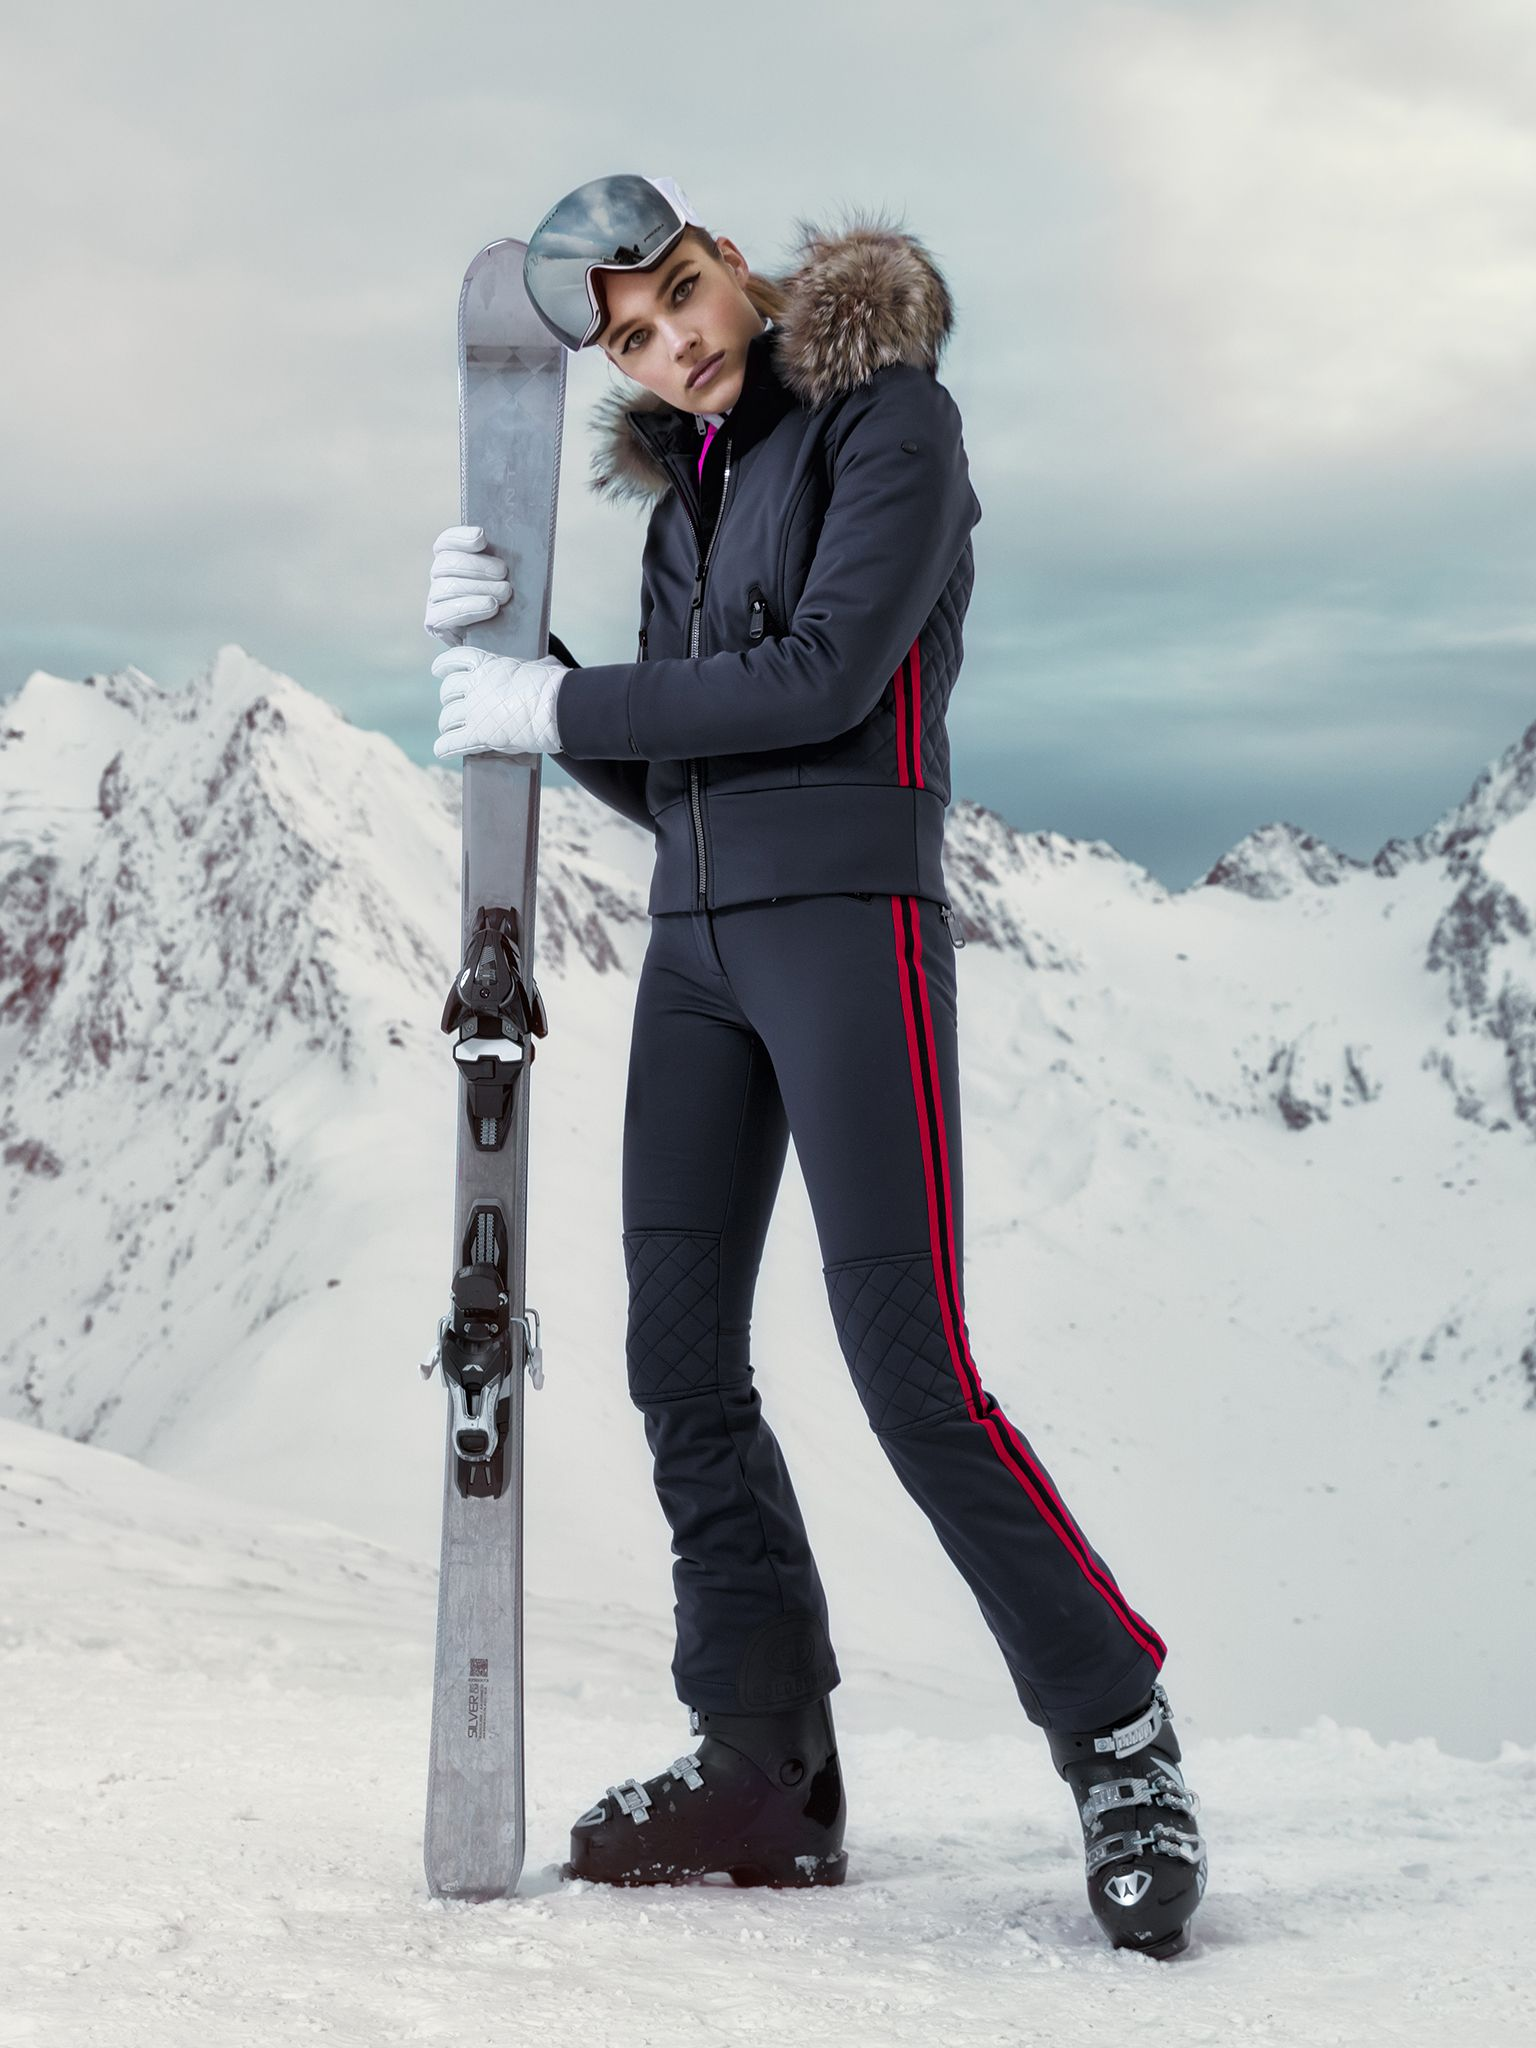 Ski Outfit With Red Stripes Altezza Fur Jacket And Flairo Skipant